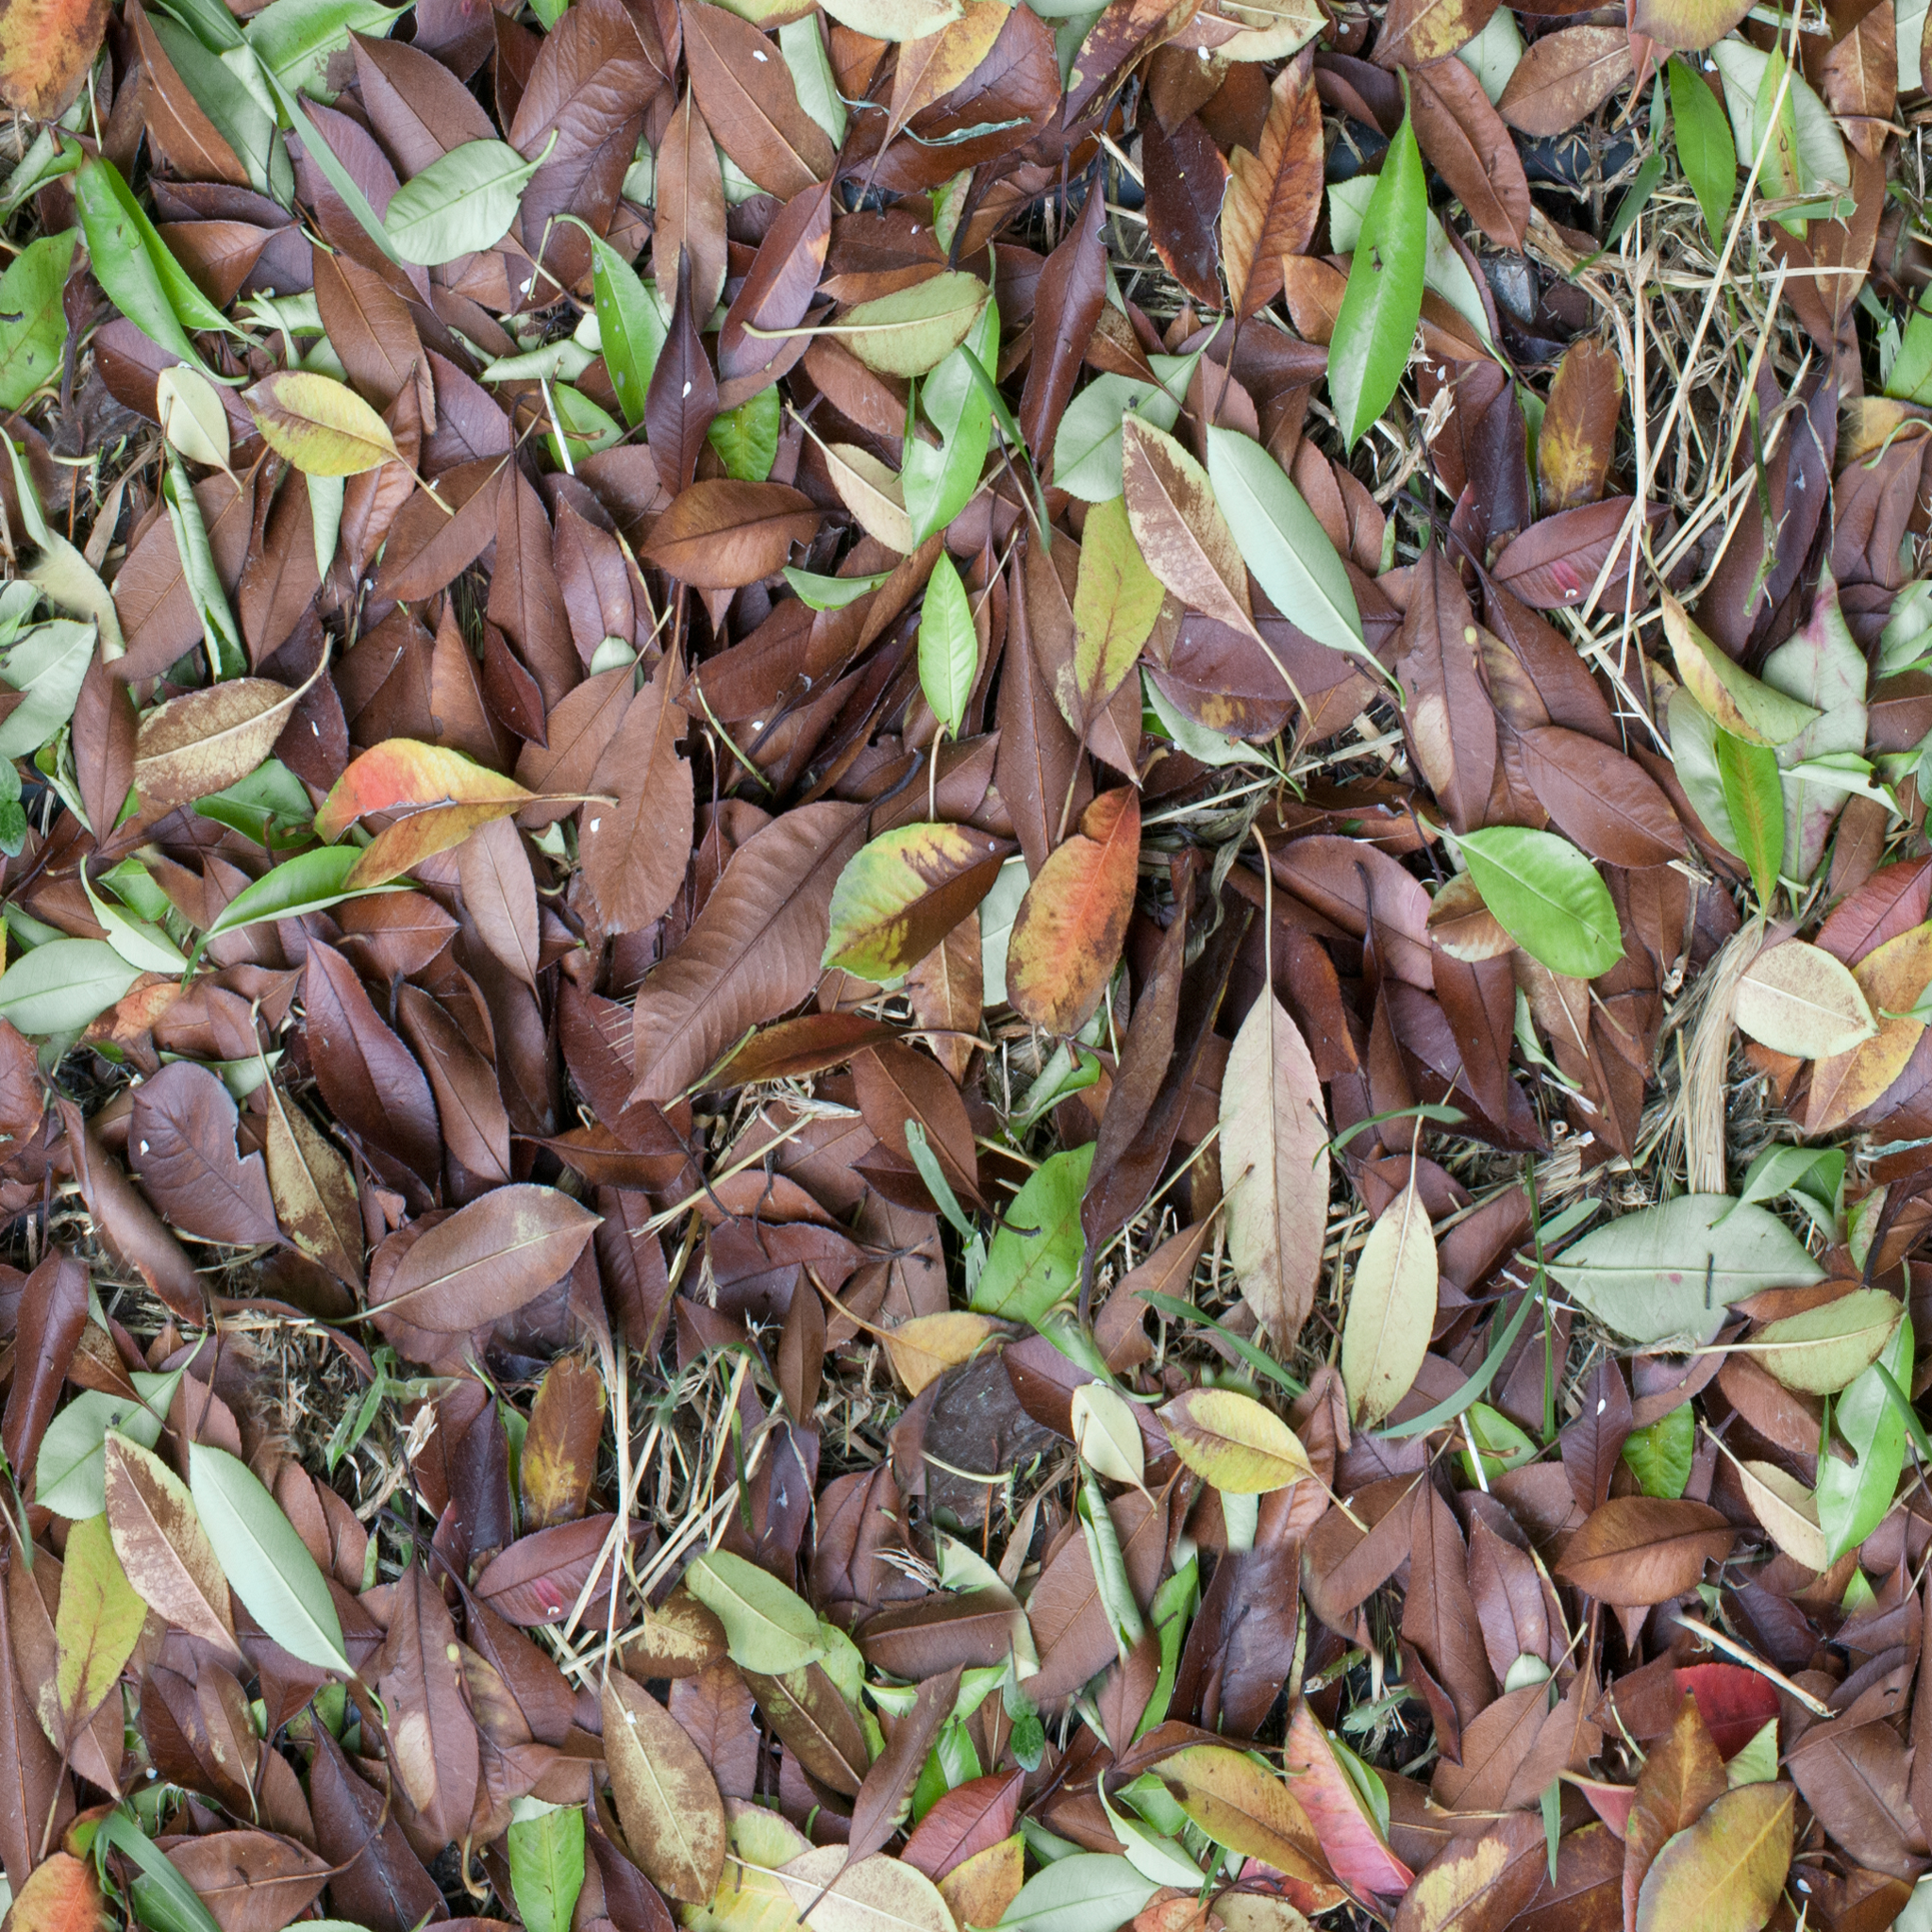 brown-and-green-leaves.jpg